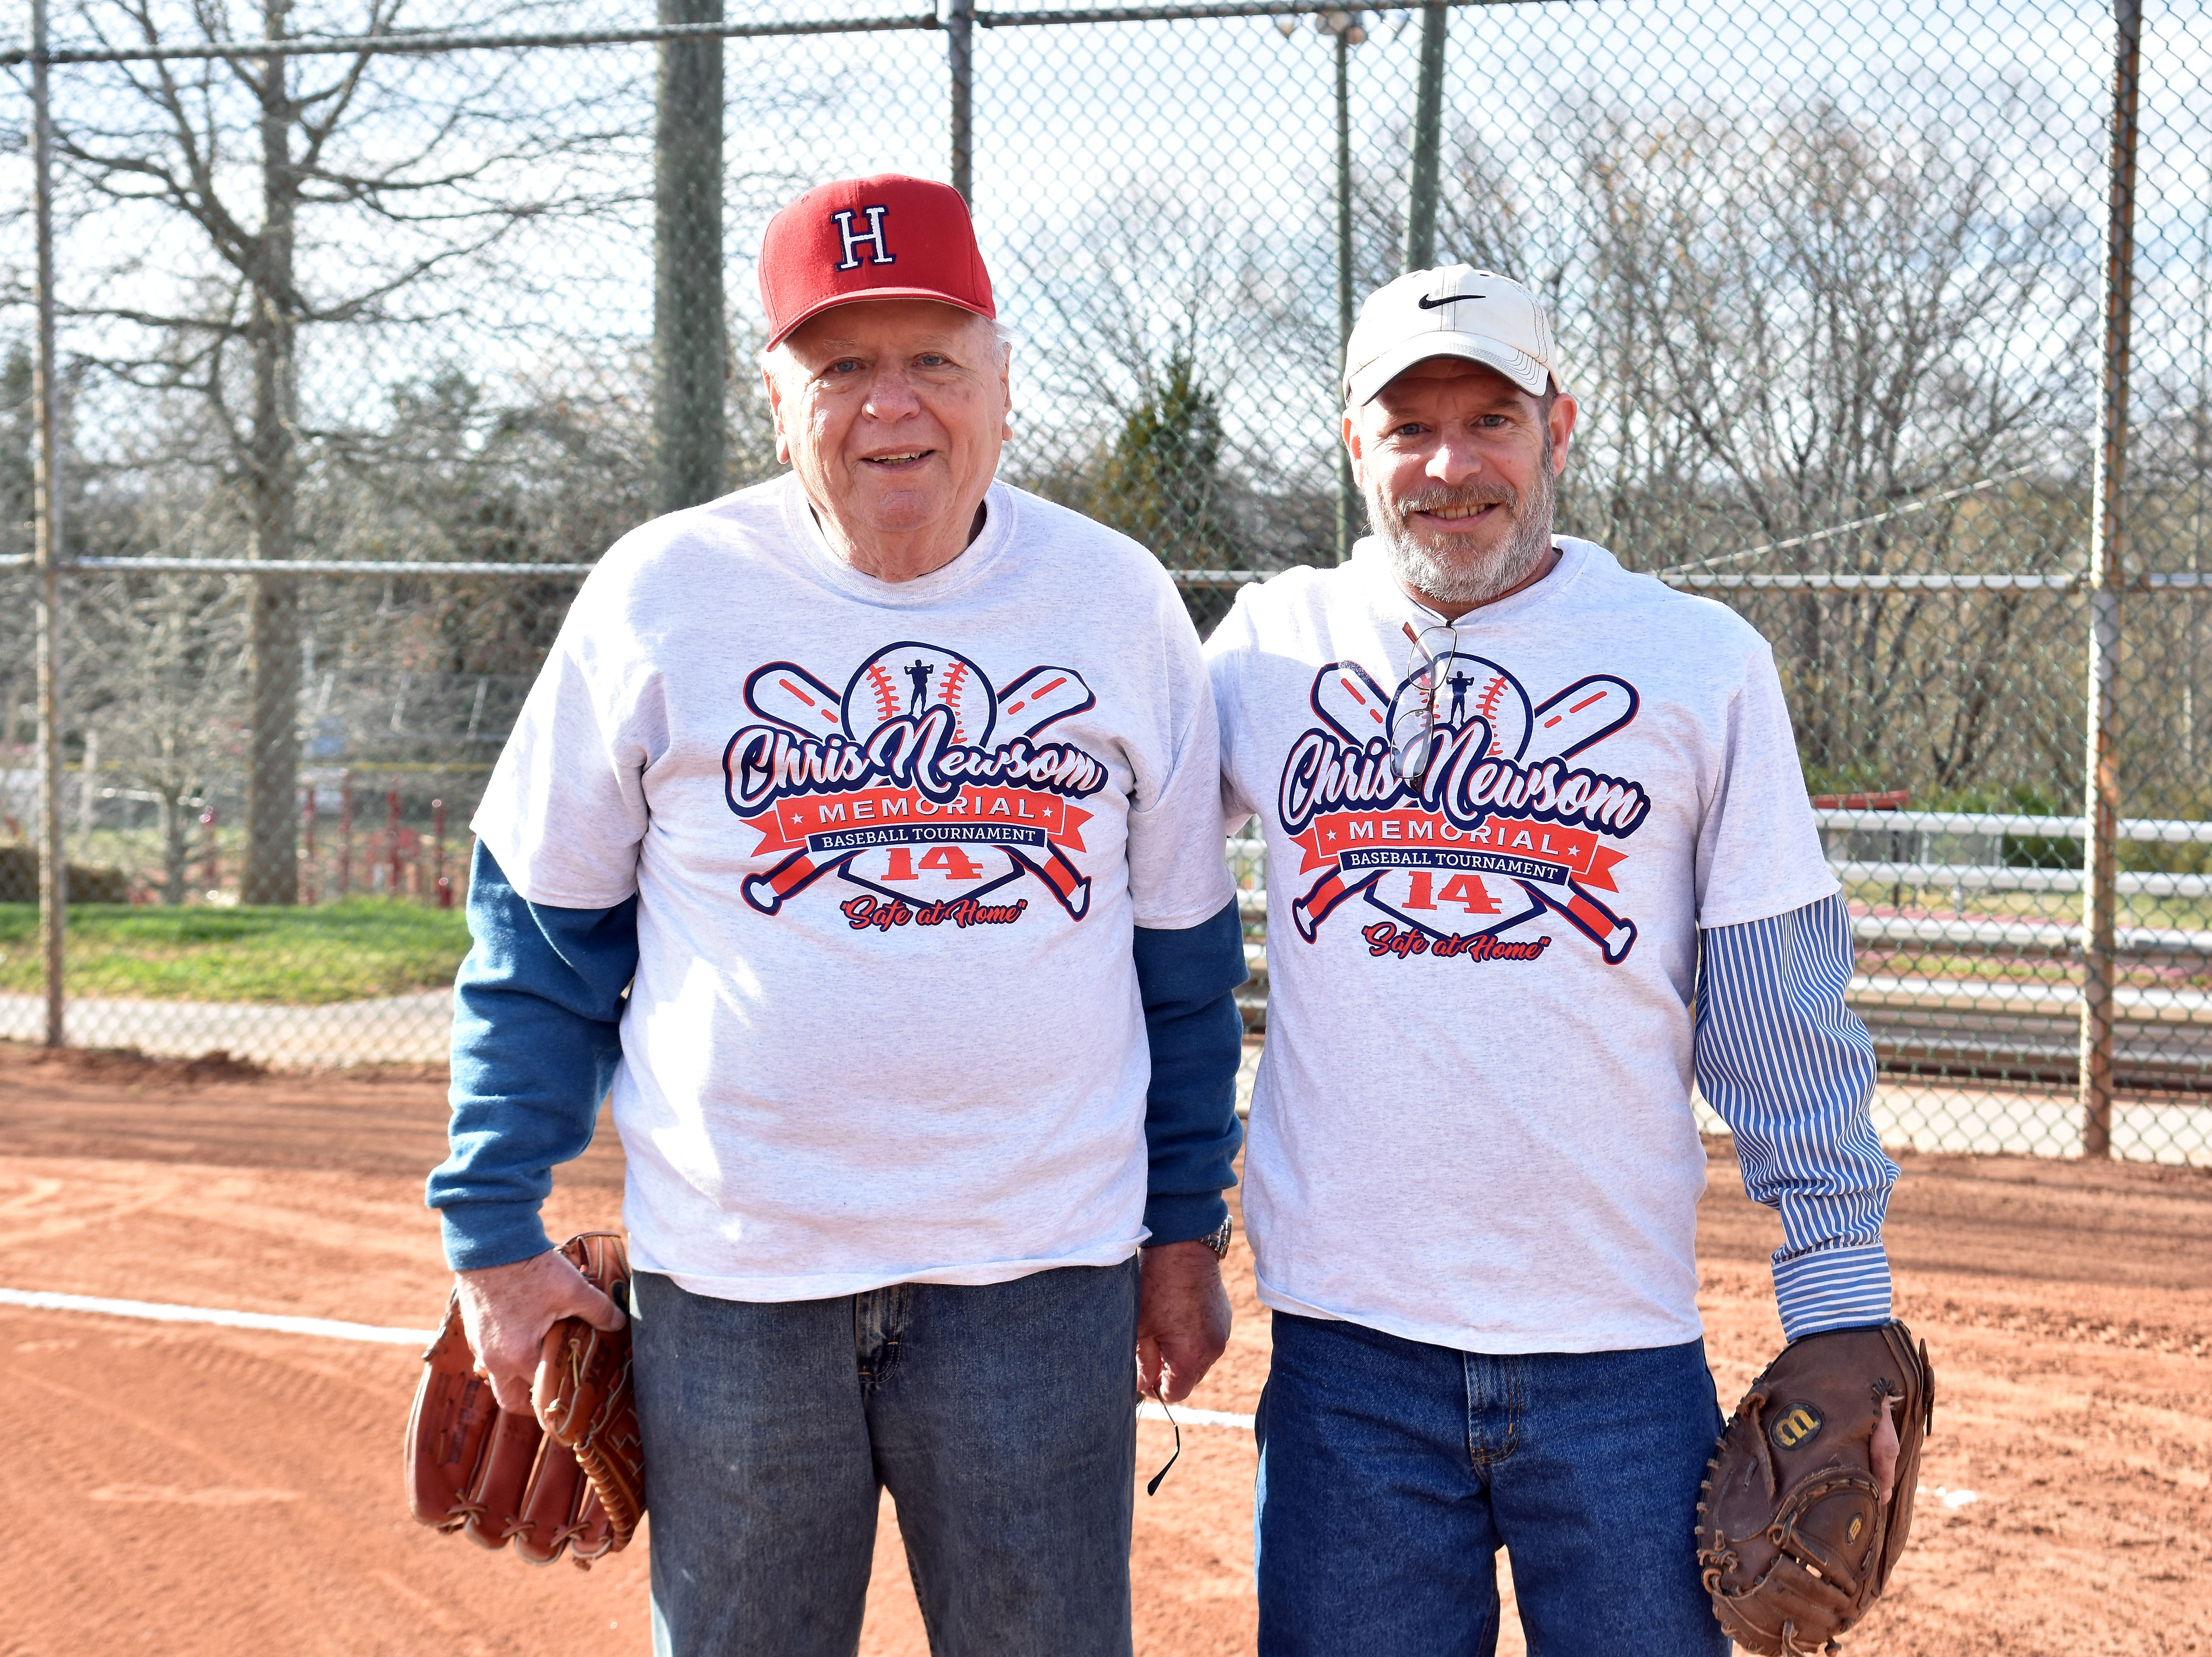 Chris Newsom's dad, Hugh, left, has thrown out the first pitch of the Chris Newsom Memorial Tournament since it began in 2008. Chris's brother Dennis Perry served as catcher for Hugh at the official opening of the tournament this year.